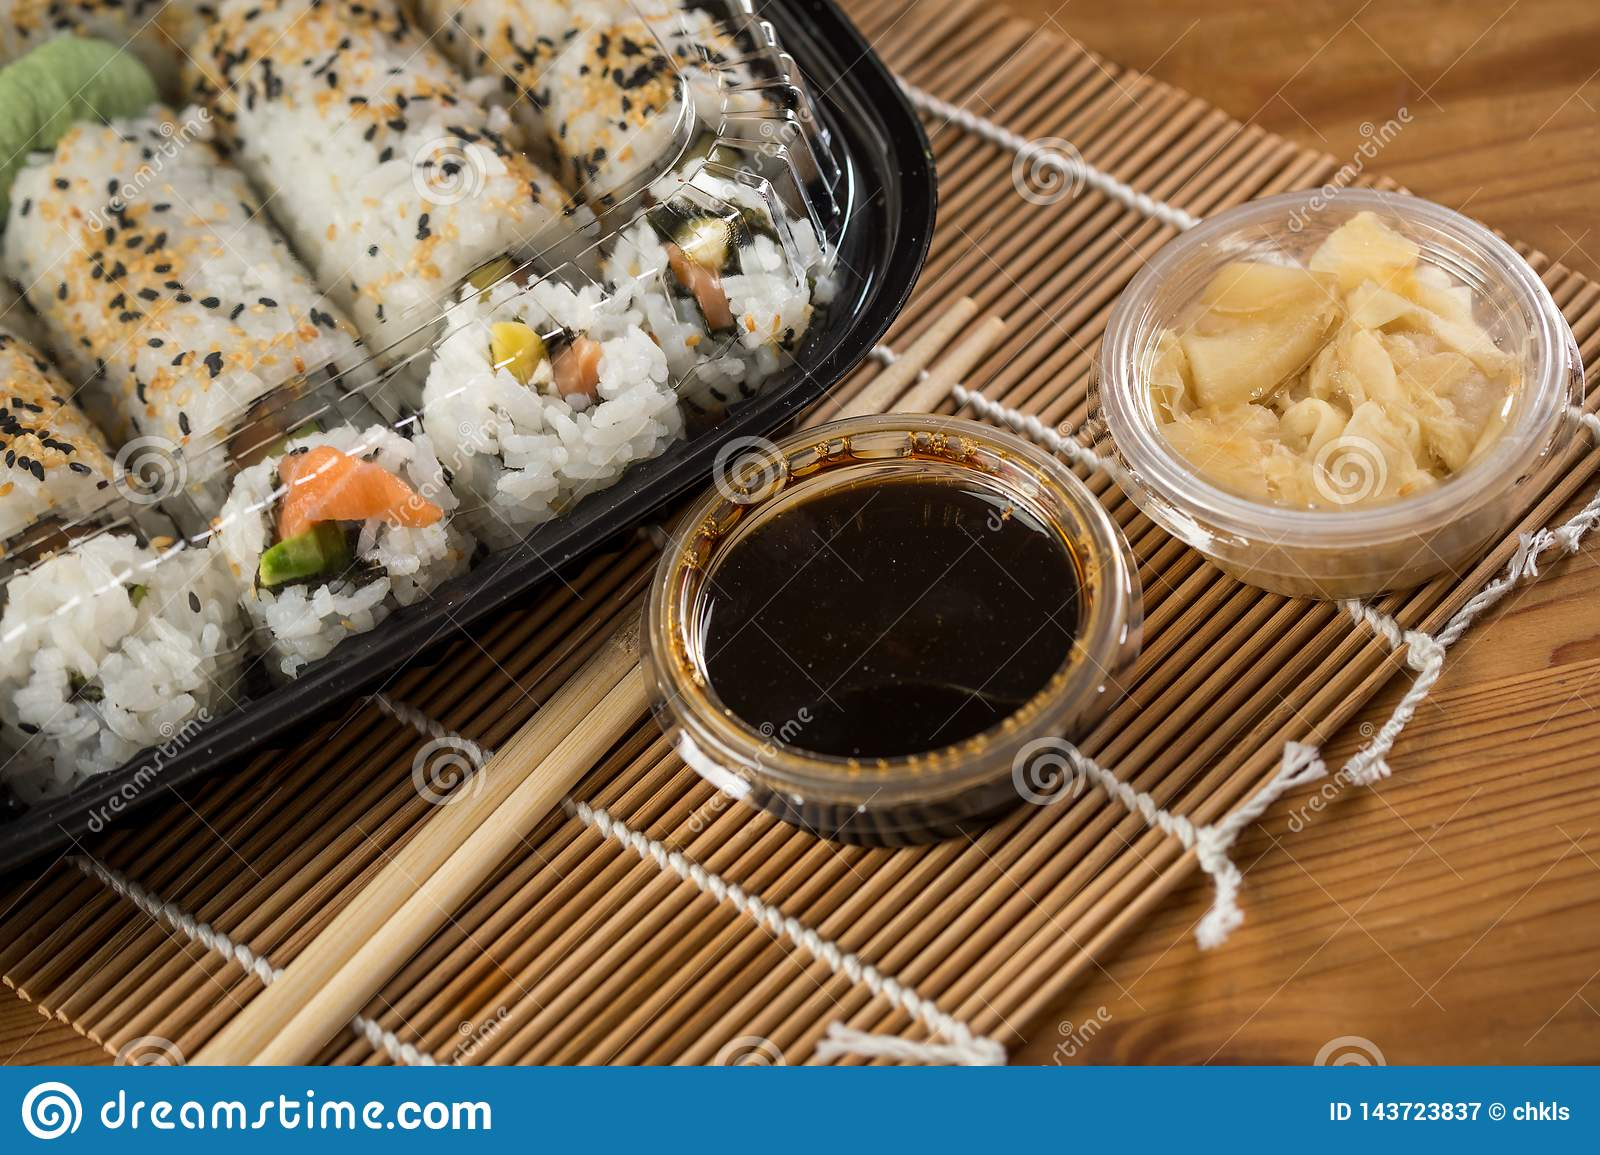 Salmon, avocado and mango inside out California sushi with soy sauce, pickled ginger, soy sauce and wooden chopsticks in plastic